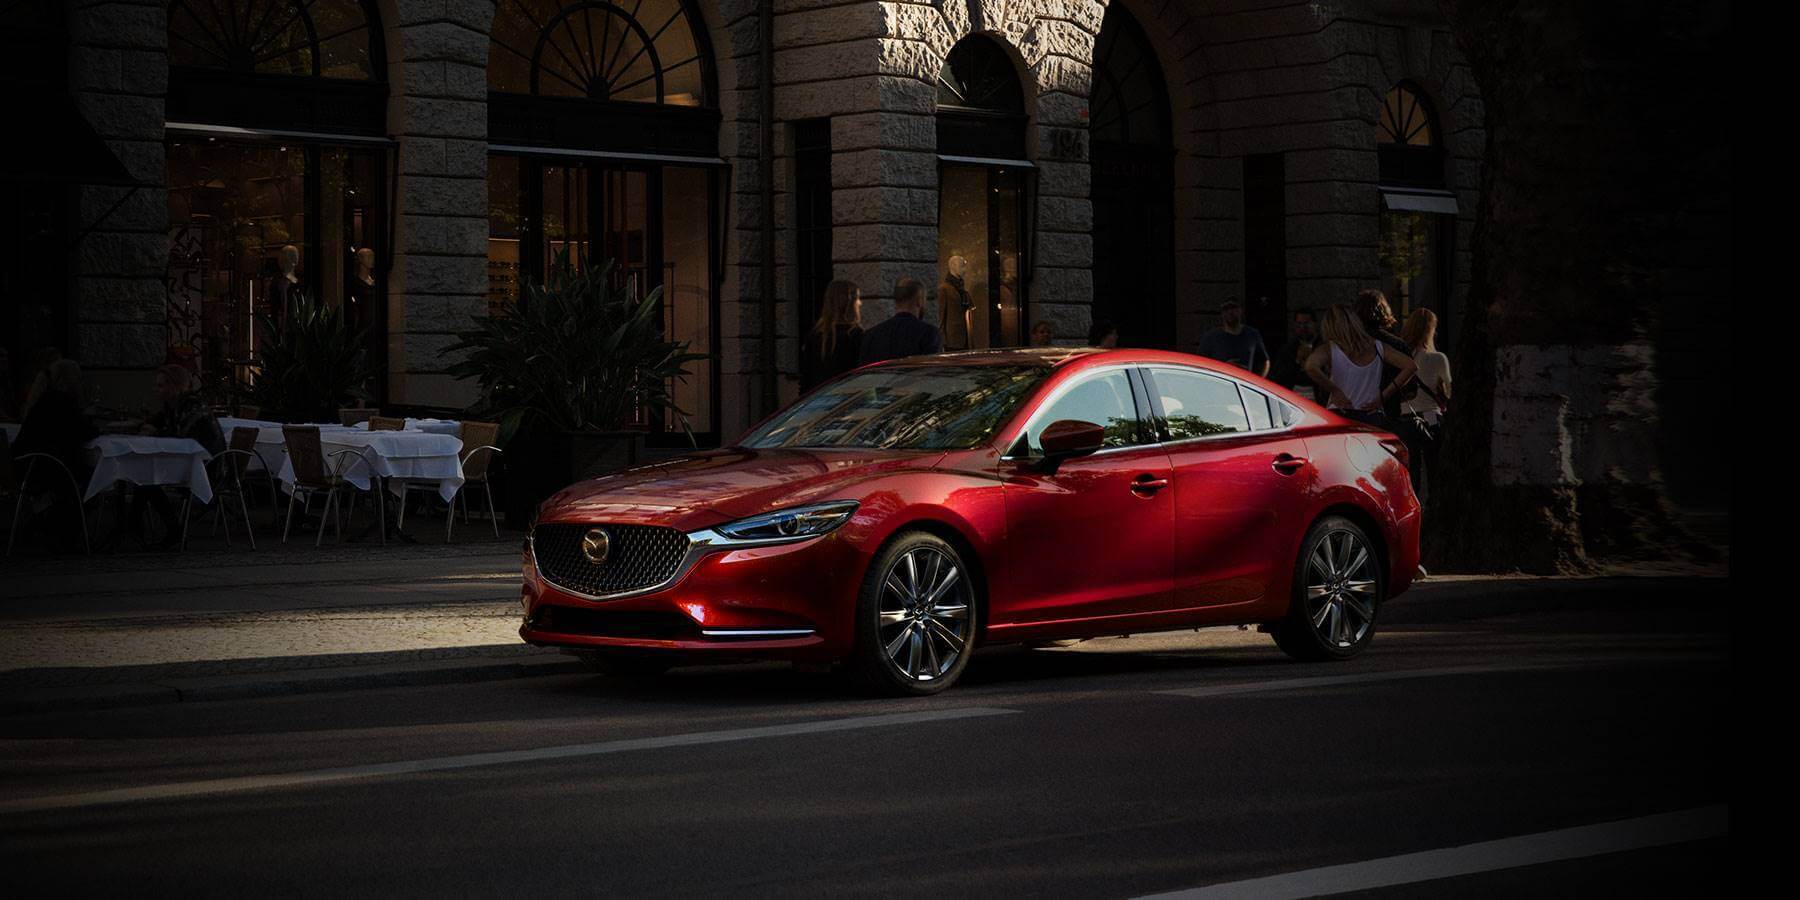 The New 2018 Mazda6 in Santa Fe, NM